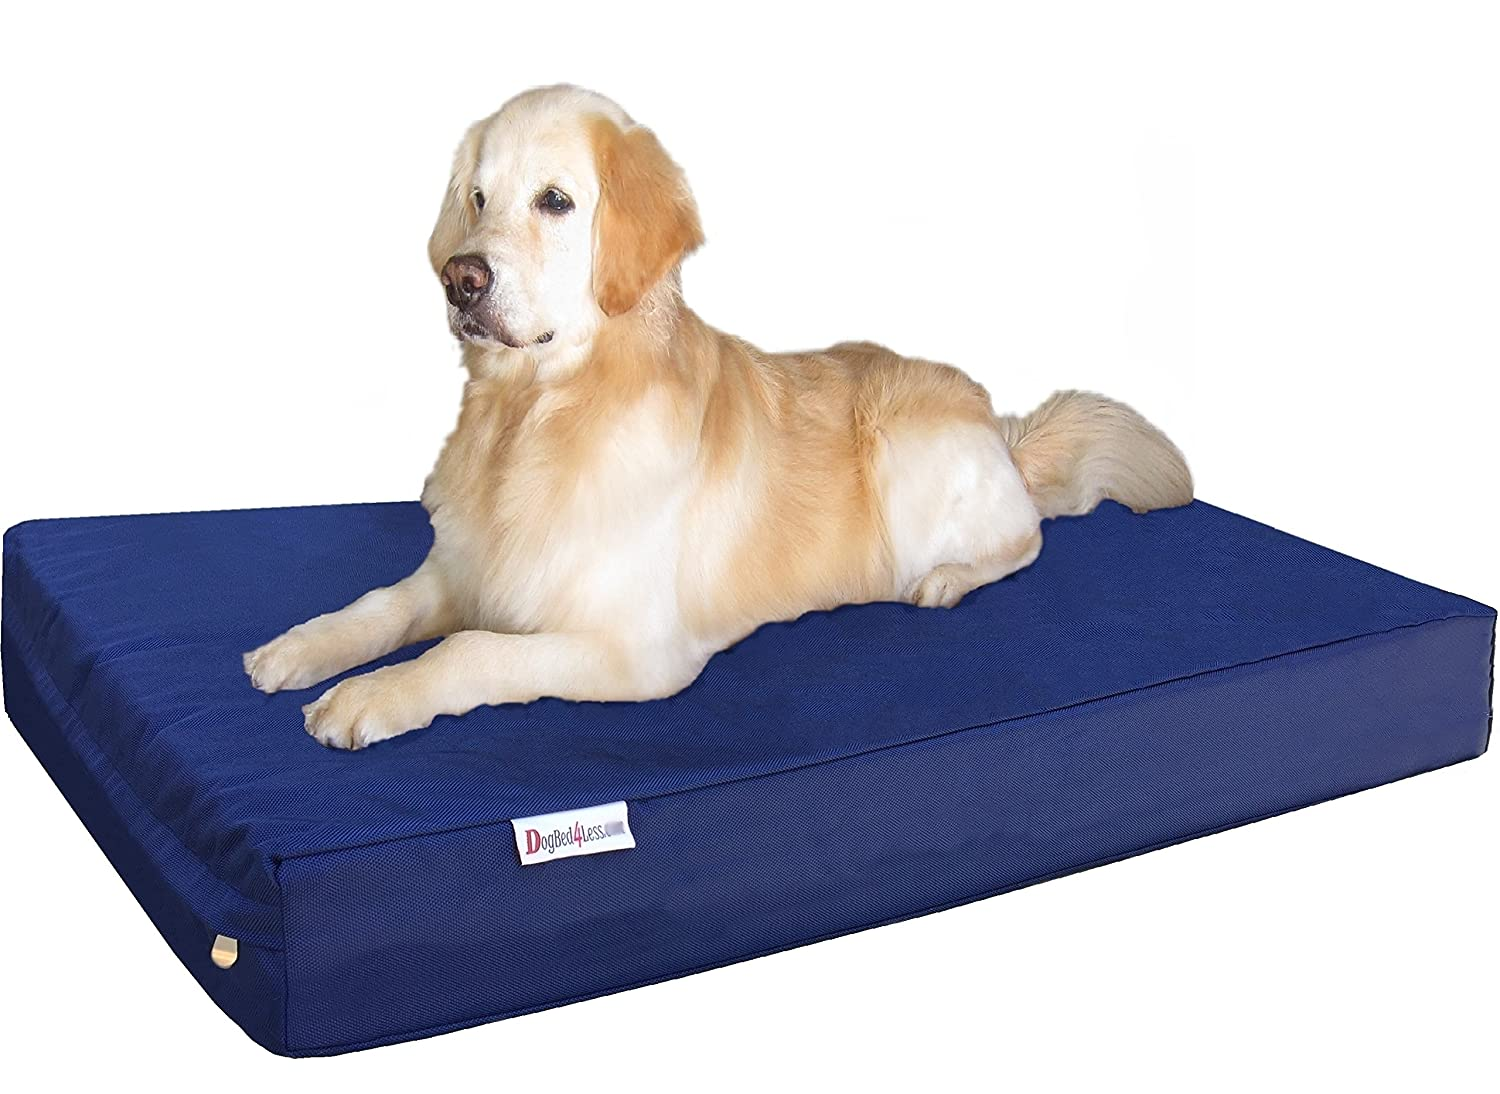 Dogbed4less Jumbo Extra Large Orthopedic Gel Infused Memory Foam Dog Bed with Washable External Zipper Cover and Waterproof Liner, 55X37X8 Inches